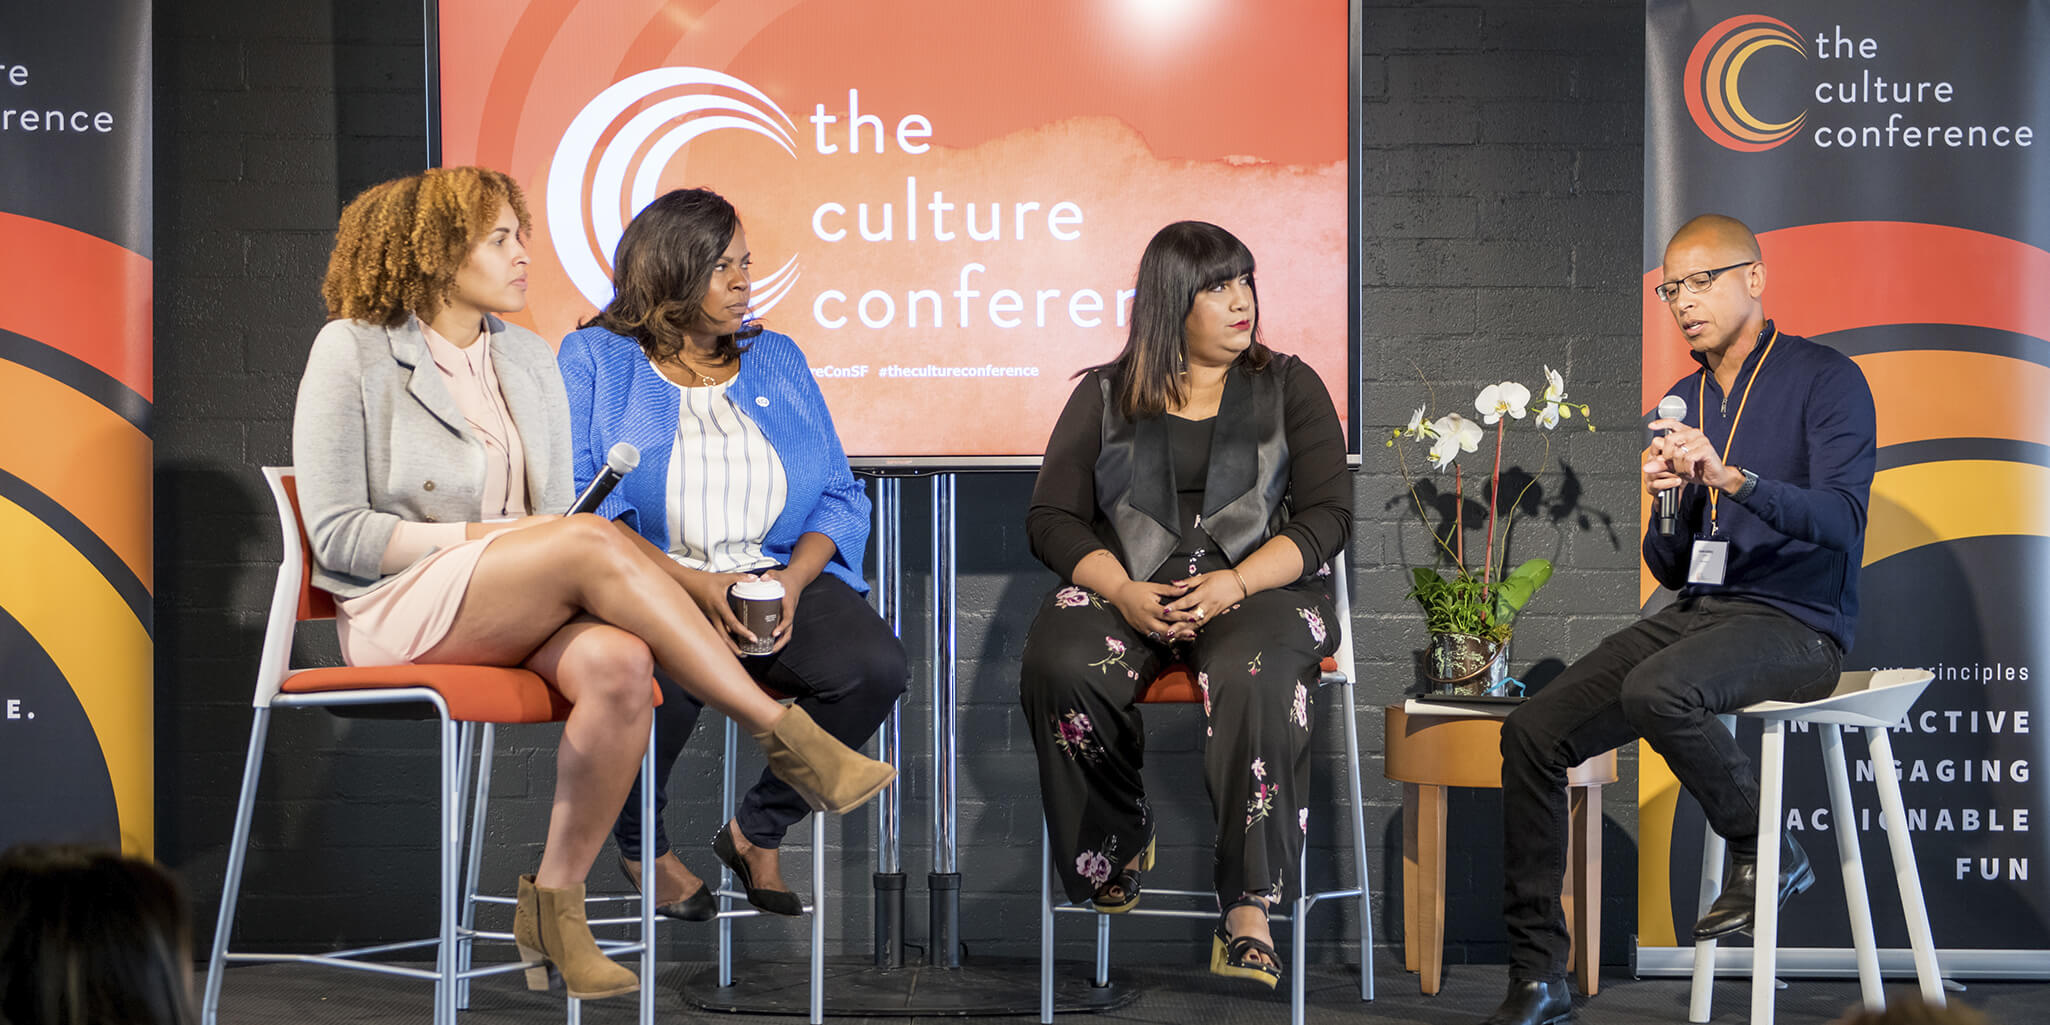 3 women and 1 man on stage during a panel discussion